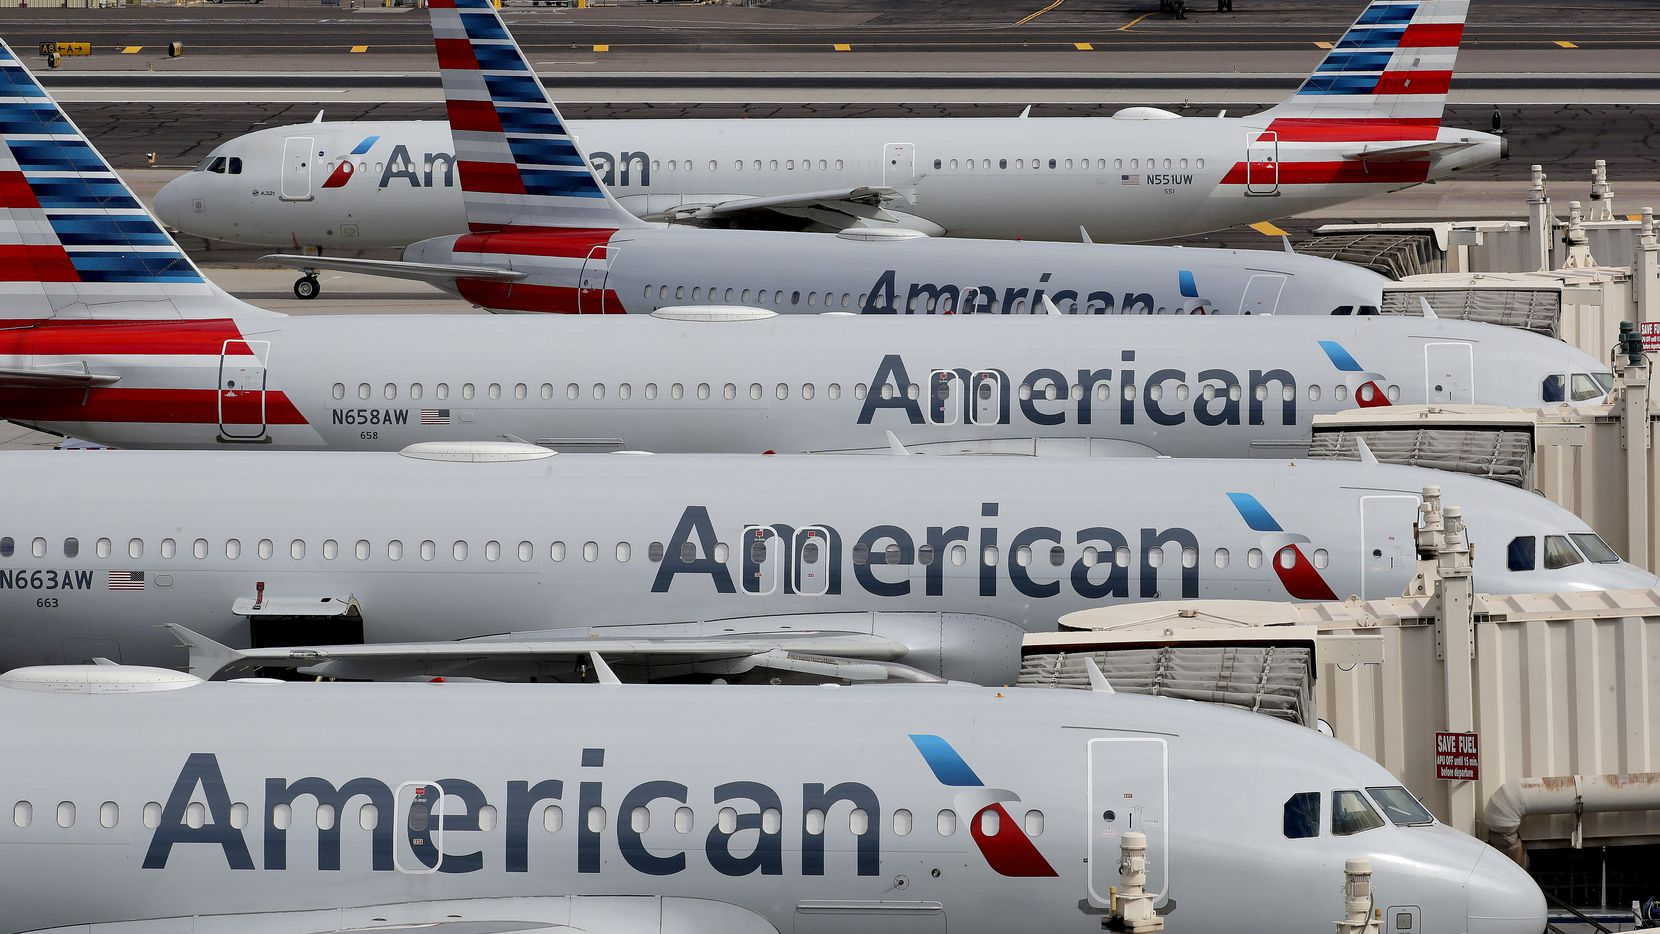 American Airlines has been hit in recent months with a number of lawsuits over customer service.